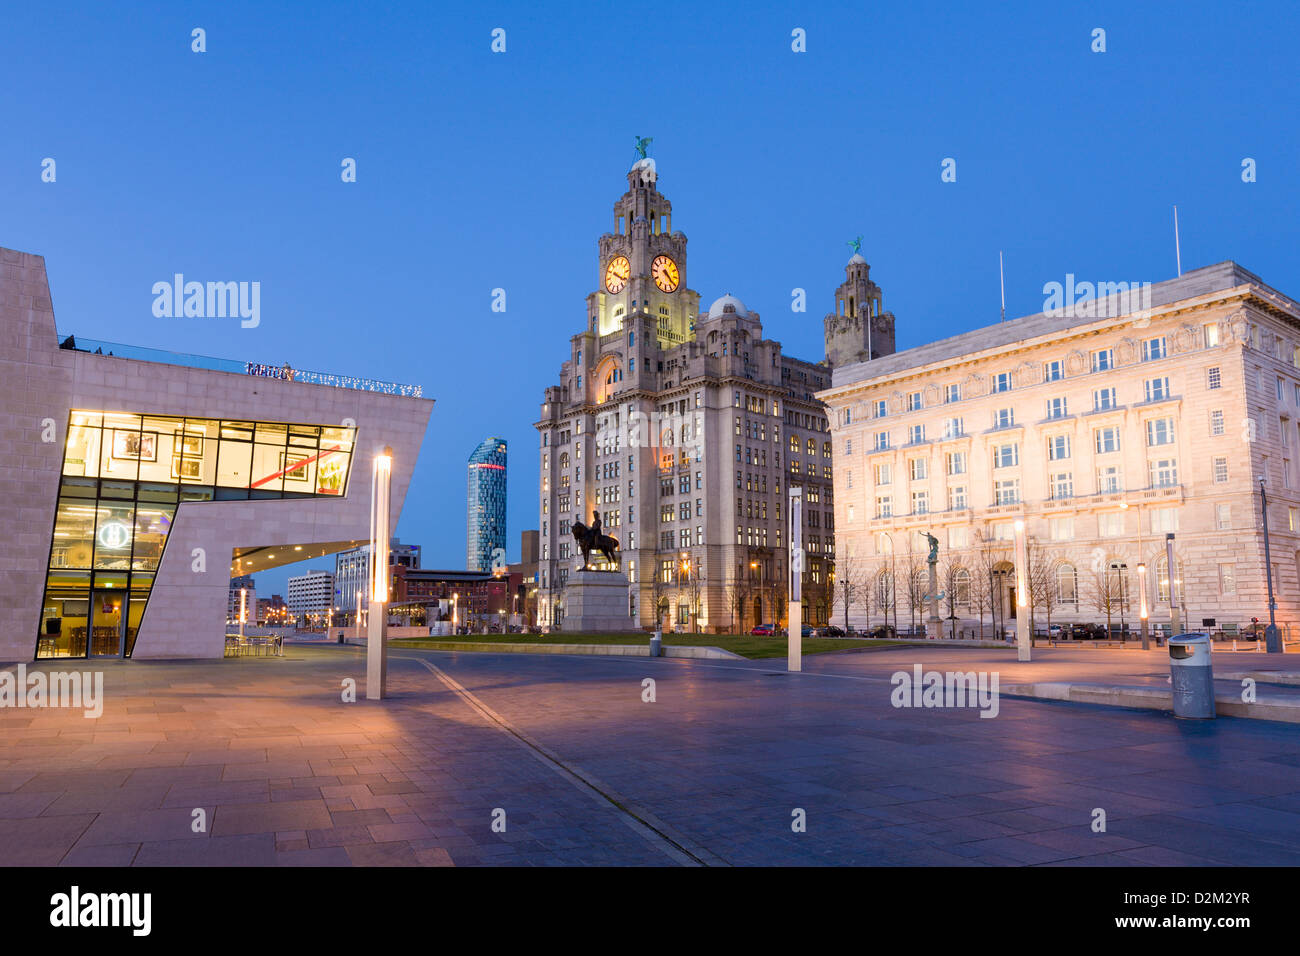 Pier head ferry terminal with Liver Buildings and statue of Edward VII, Liverpool, England - Stock Image